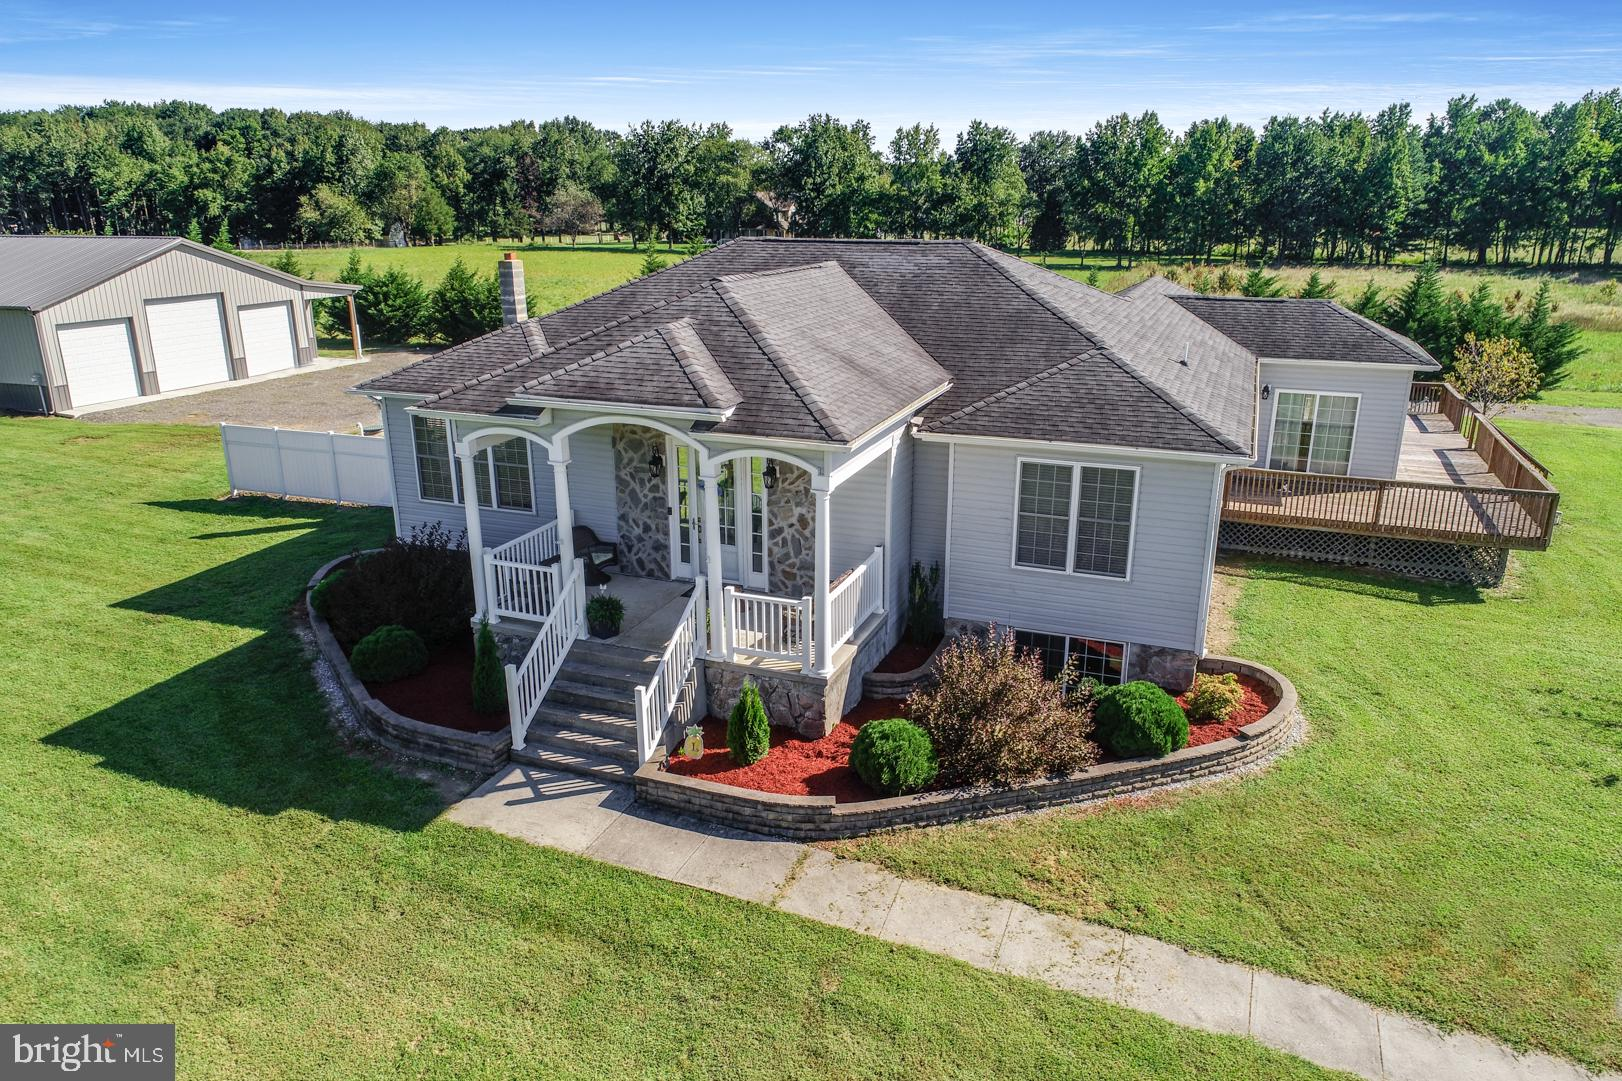 "This is the home you have been waiting for! 2.2 acres, with an oversized 50 x 60 pole barn,  custom kitchen cabinets, a partially finished basement, what more can you ask for?! Bring your boats, RV, Semi Trucks, race cars as a car lift is included! You can add a pool, a ""she shed"", another barn! Convert your new pole barn into a car enthusiasts dream, a crafters paradise, park your RV's, your boat, your campers, maybe even finish it into a hangout spot for Sunday night football! This property has endless possibilities! NO HOA, NO Deed Restrictions! As you walk up to this home you will be impressed by the stone on the front of the home, the beautifully welcoming stair case, the vinyl railing front porch. This home features beautiful solid surface flooring throughout, an elaborate tile fire place in the living room, an open floor plan with plenty of windows! The kitchen is a chefs dream with granite counter tops, custom cabinetry, stainless appliances with an in wall oven, gas cooktop with vent fan hood, a pot filler, and HUGE island over looking the main living space! The full 4 piece master bath features tile, granite, more custom cabinets, a corner jetted tub, and a tile shower with 2 shower heads and glass shower doors! This home features a full basement that is partially finished and ready for your custom touches! Dont forget the huge rear deck overlooking this beautiful property. Schedule your tour today!"